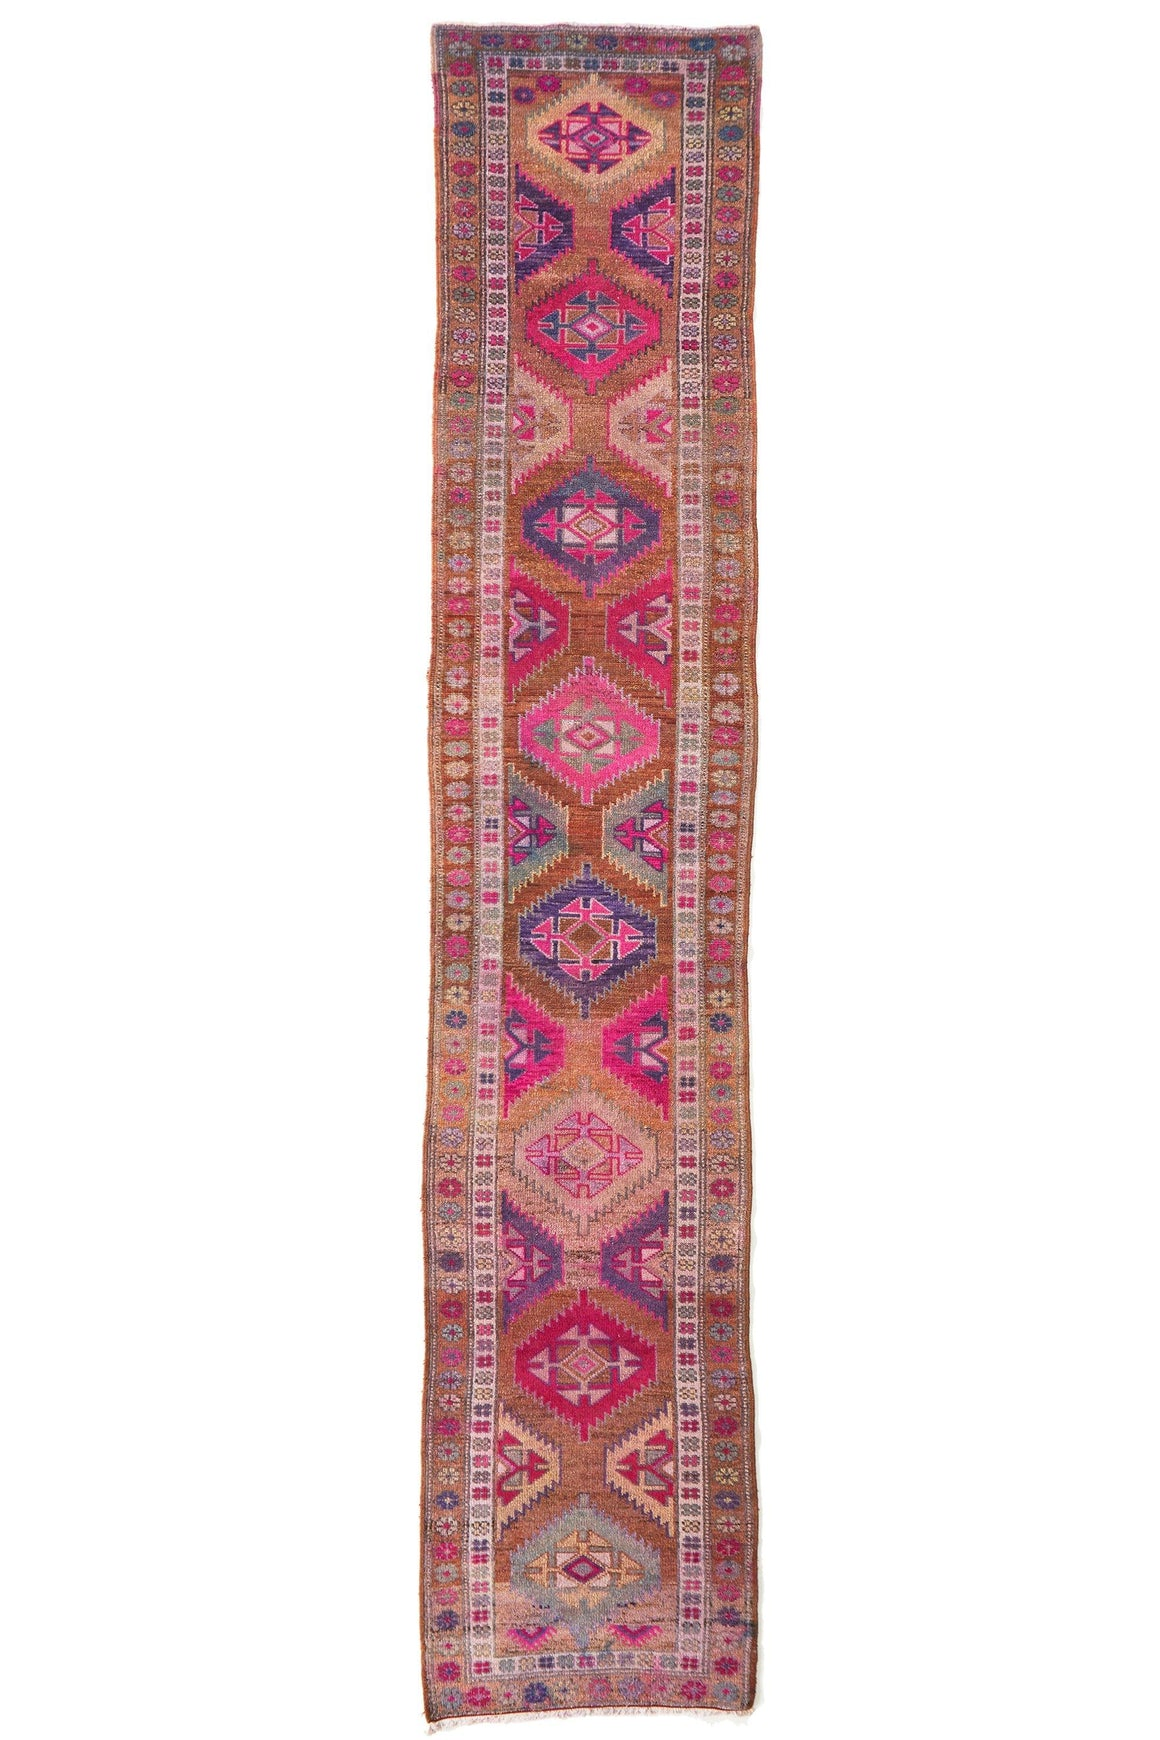 'Wonderland' Vintage Turkish Rug - 2'10'' x 15'1' - Canary Lane - Curated Textiles